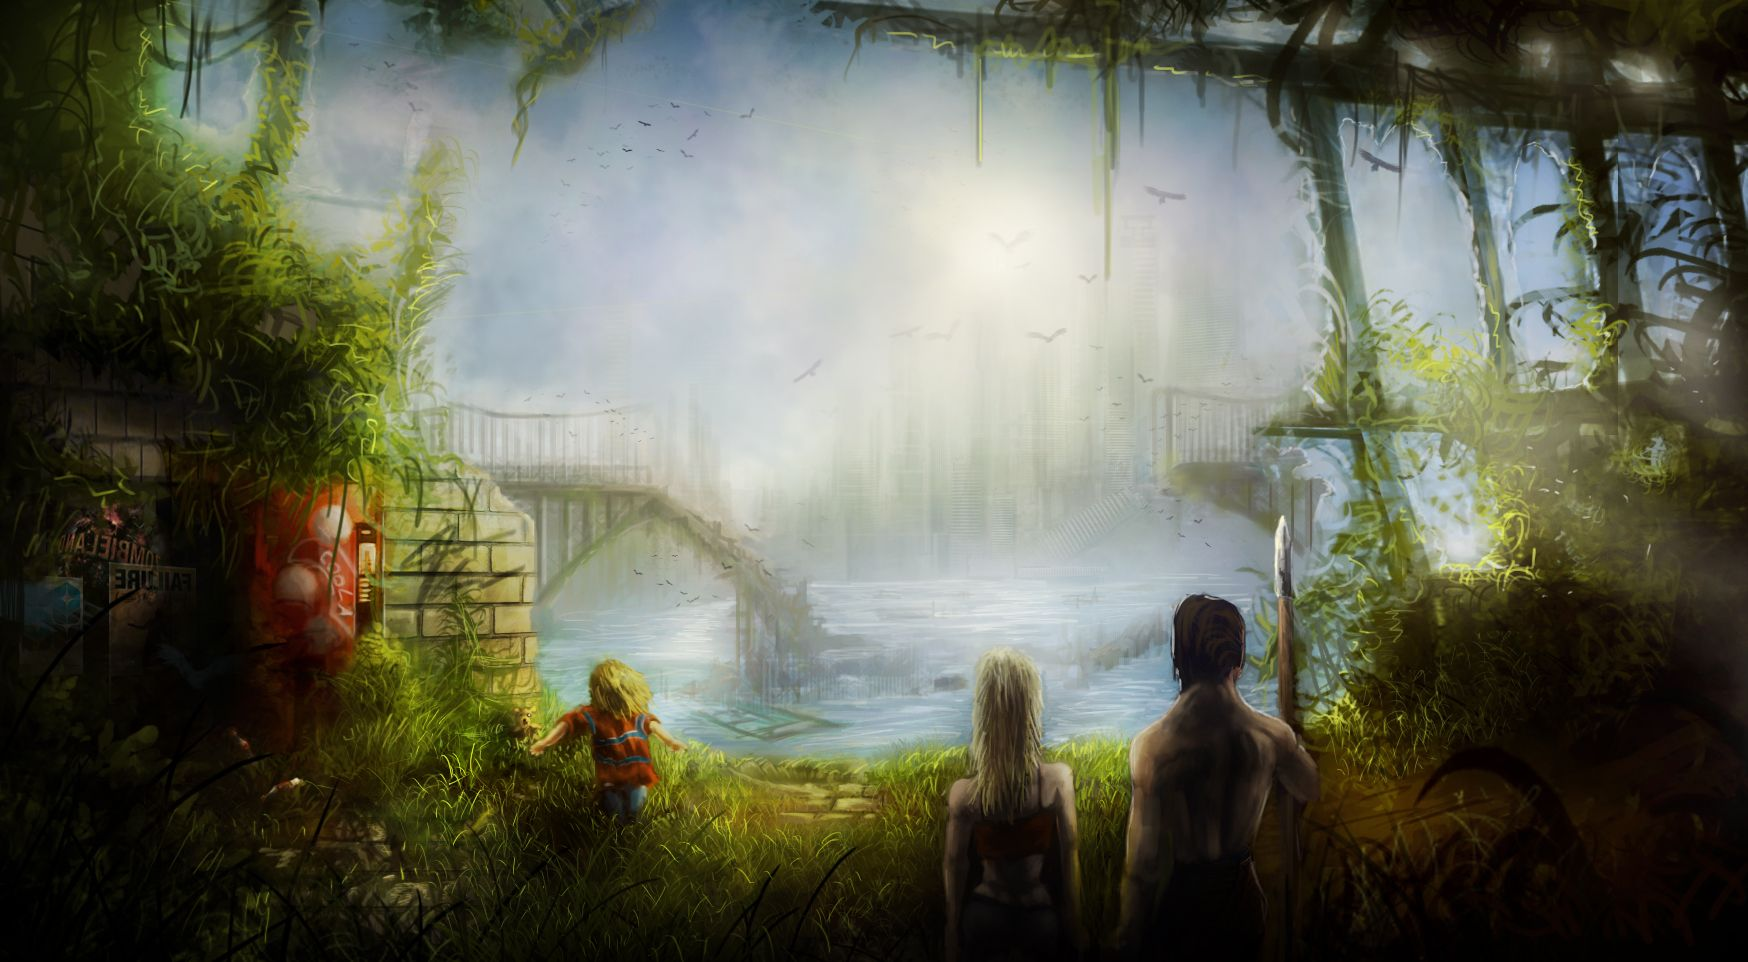 post apocalyptic world by fmikeart on DeviantArt